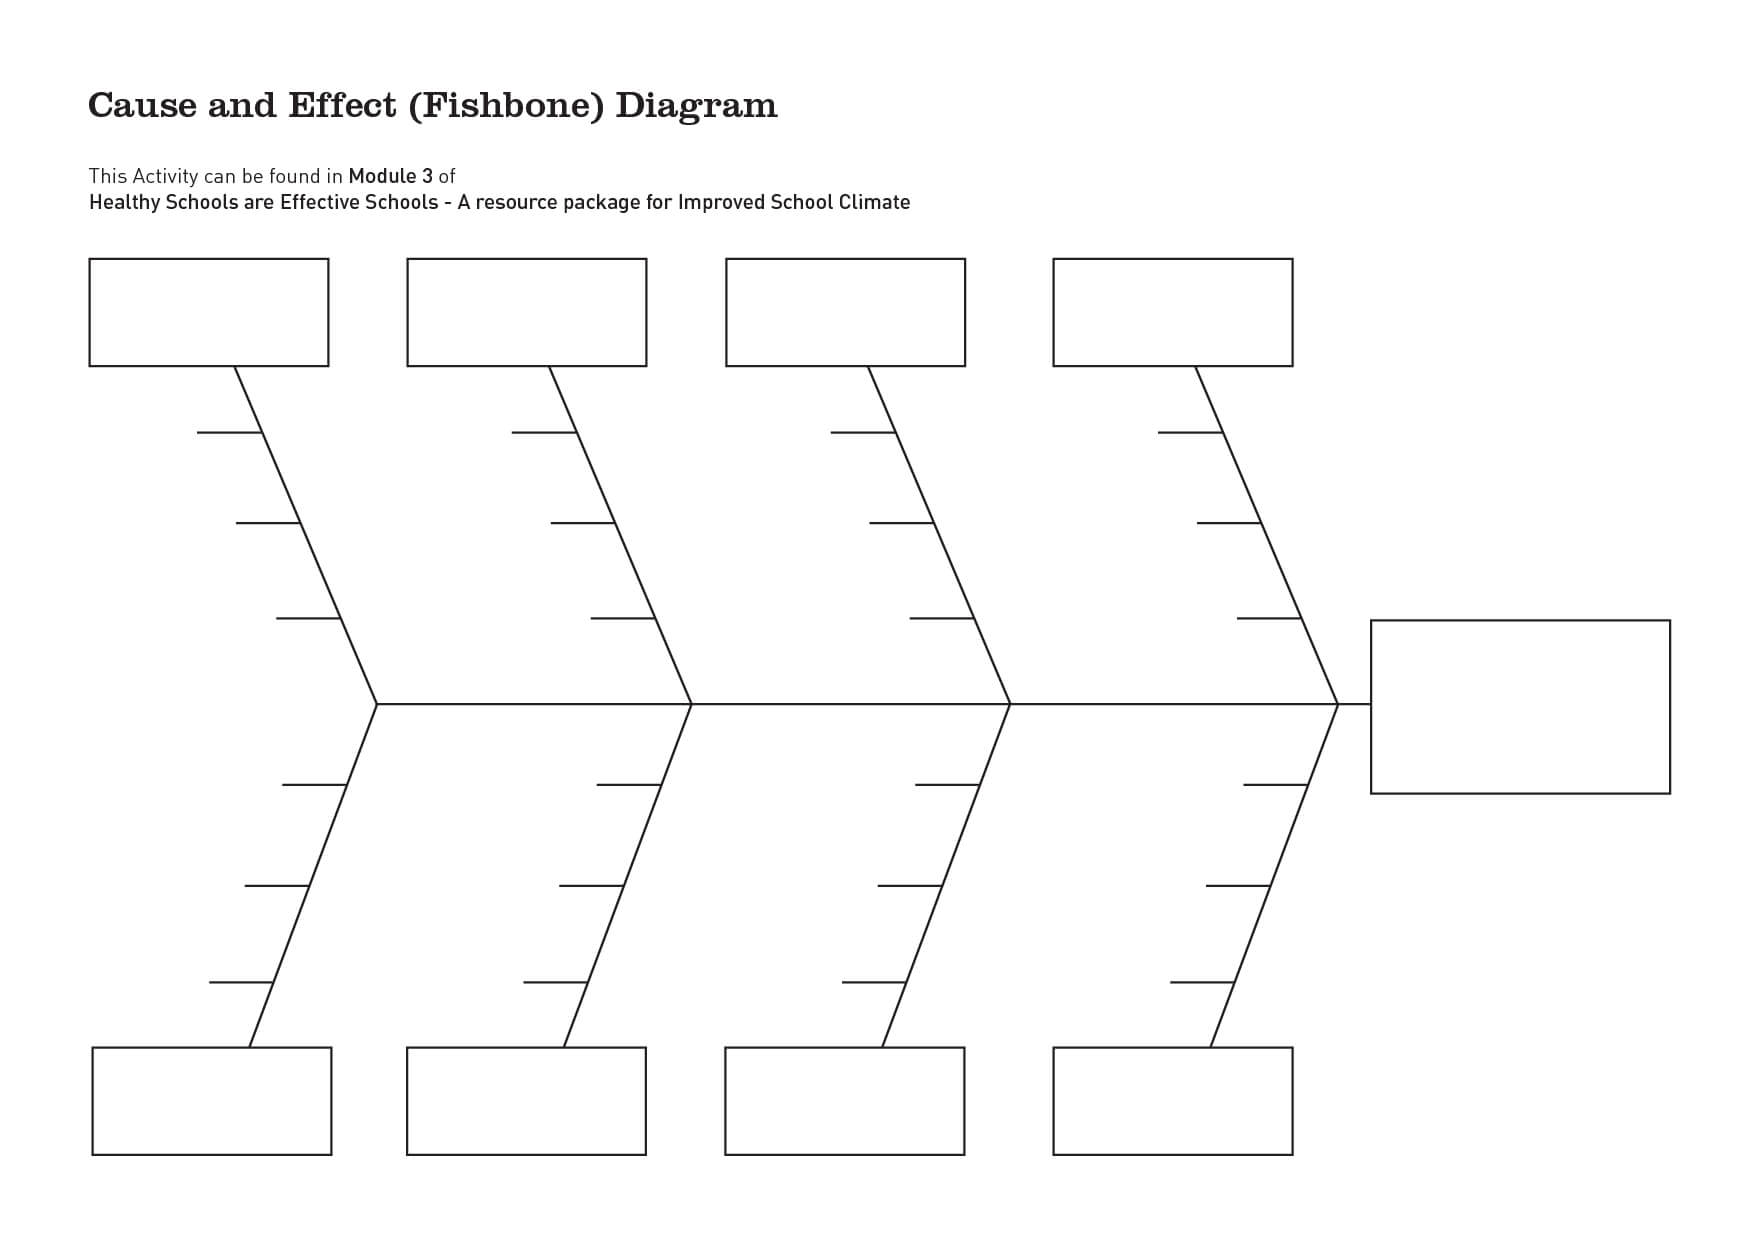 28+ [ Cause And Effect Diagram Word ] | Fishbone Diagram Inside Blank Fishbone Diagram Template Word